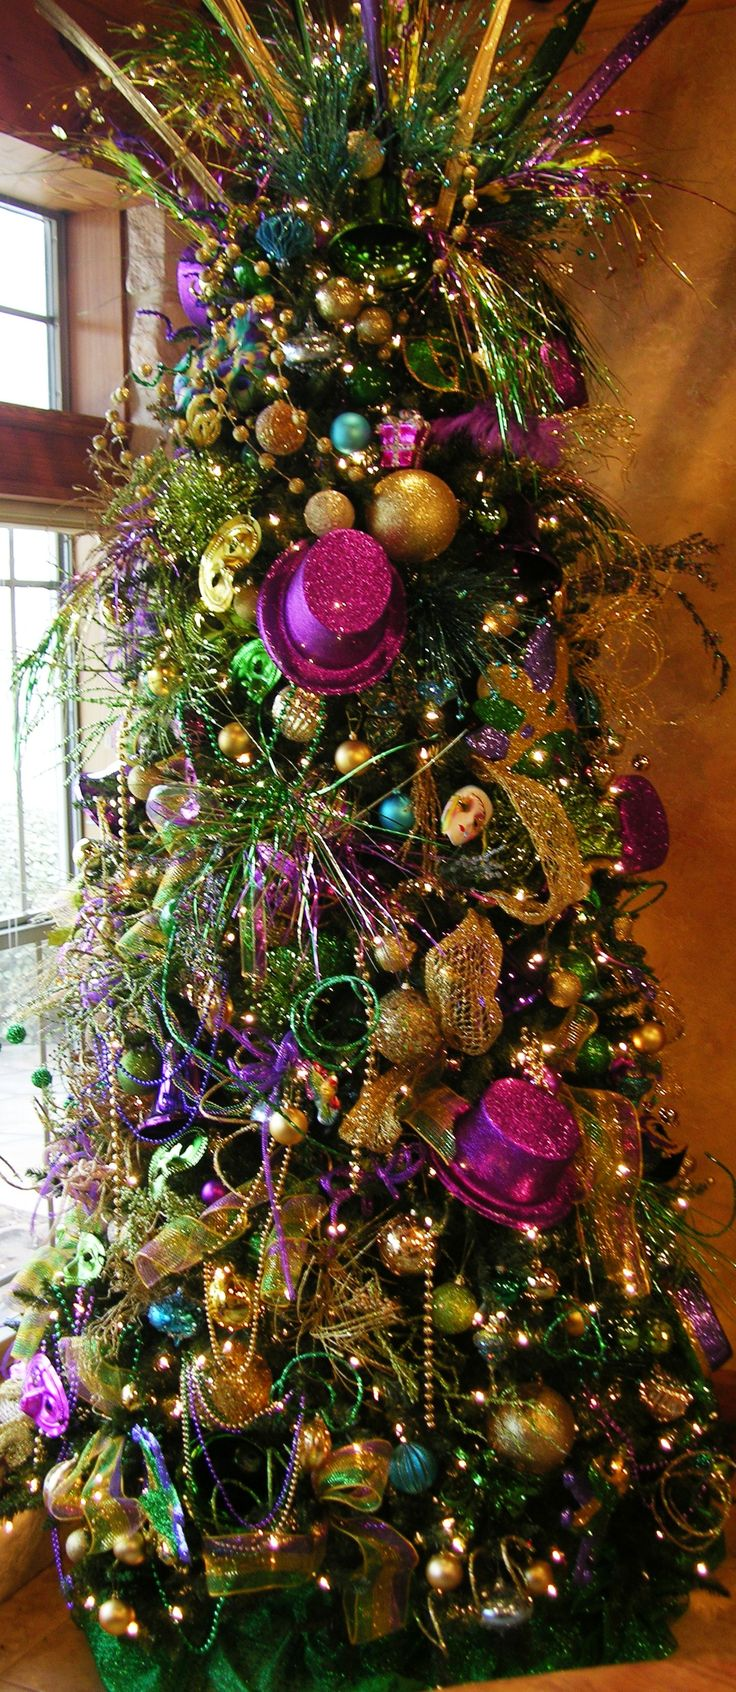 Wow! So fabulous! Crazy that there are people who do this right after Christmas, though. #mardigras